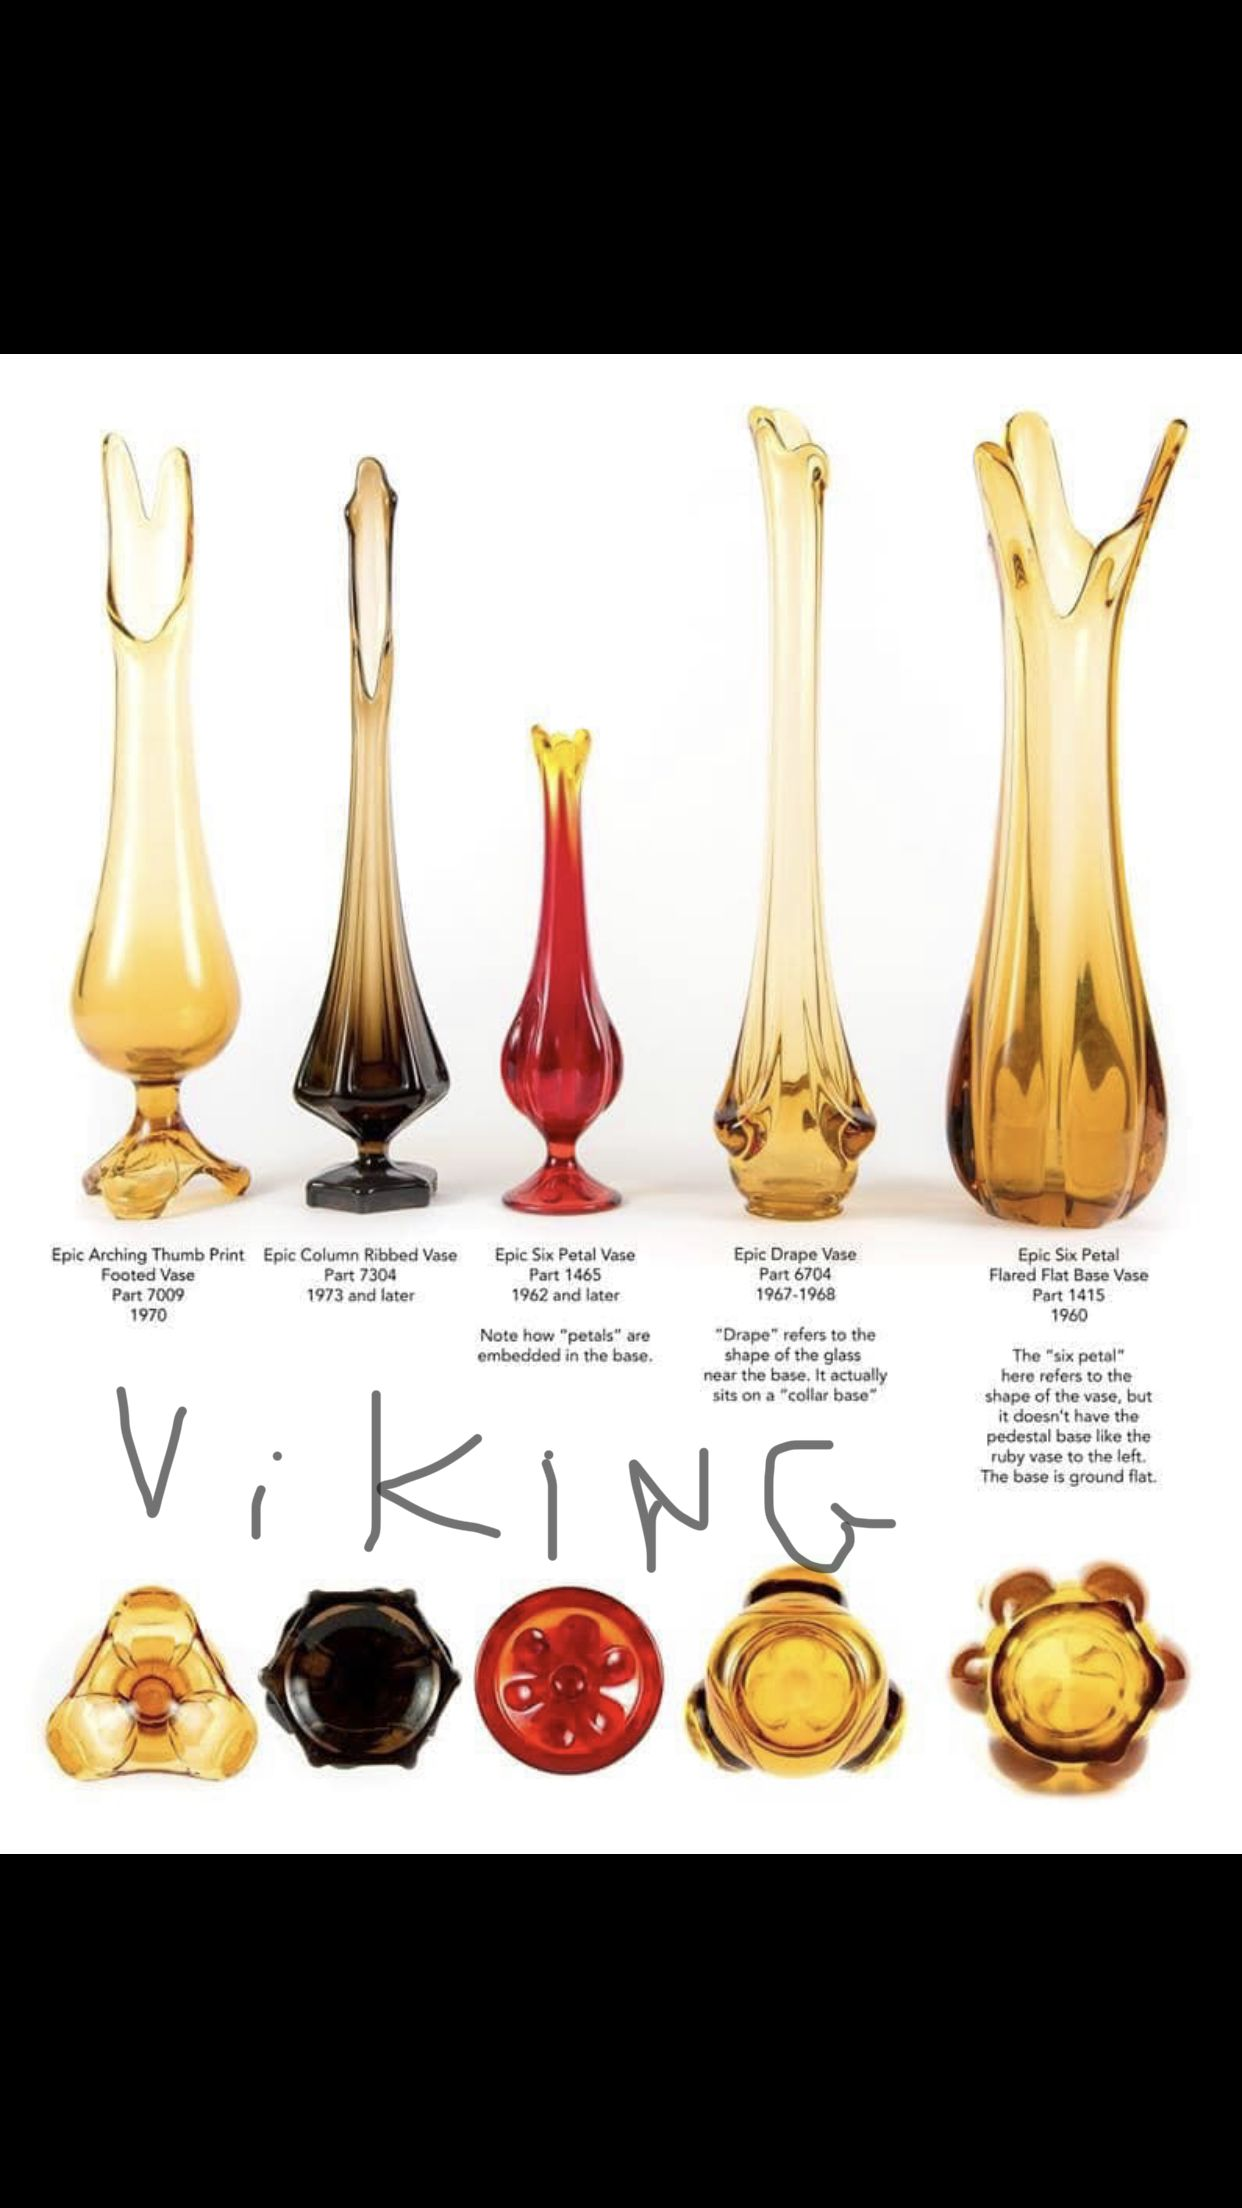 Pin By Theresa Maxwell On Glass Viking Glass Antique Glass Vintage Glassware